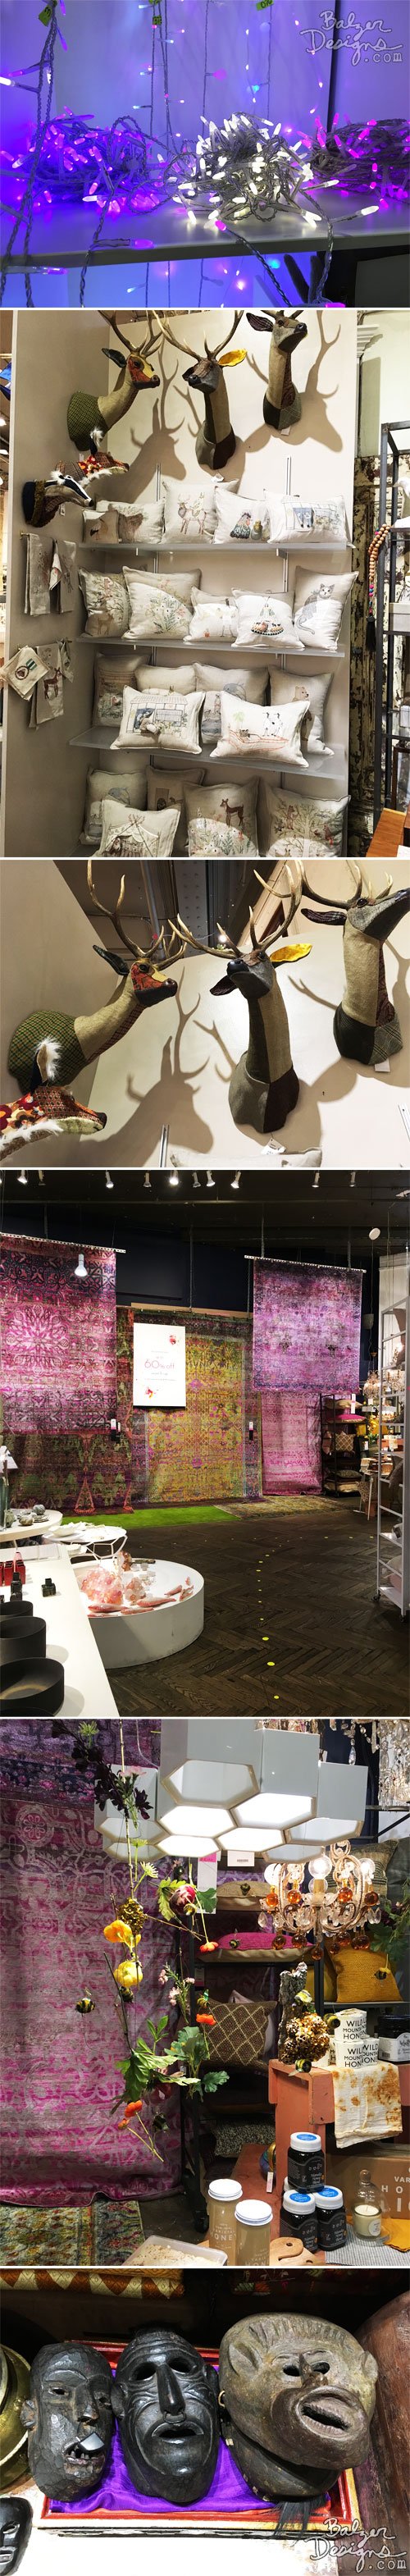 From the Balzer Designs Blog: Inspiration at ABC Home